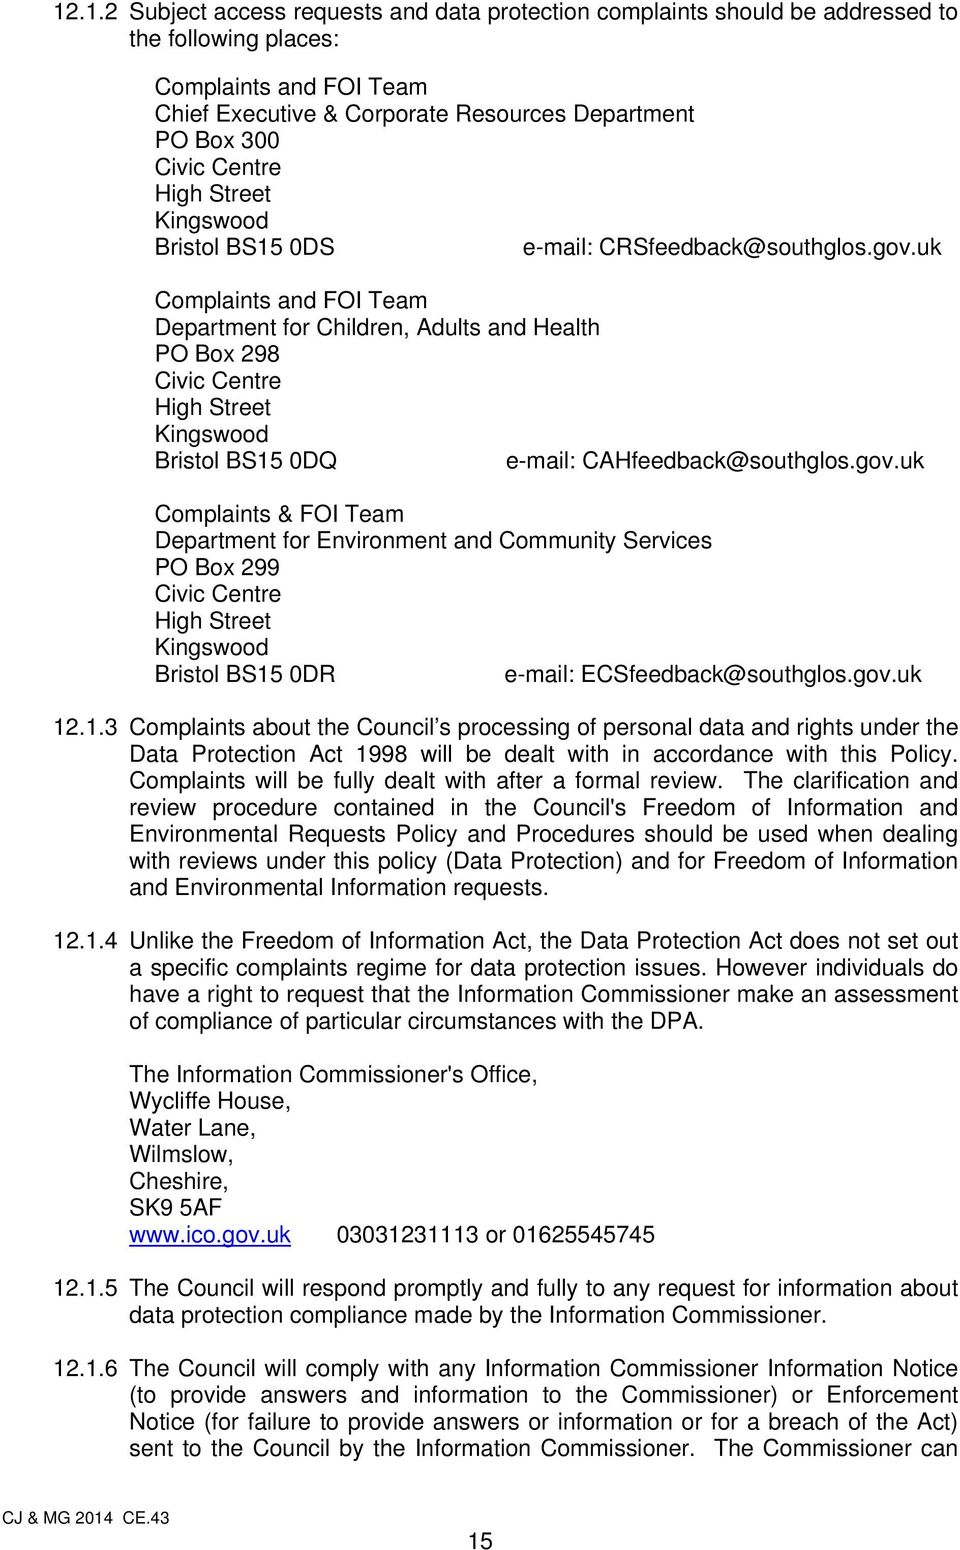 uk Complaints and FOI Team Department for Children, Adults and Health PO Box 298 Civic Centre High Street Kingswood Bristol BS15 0DQ e-mail: CAHfeedback@southglos.gov.